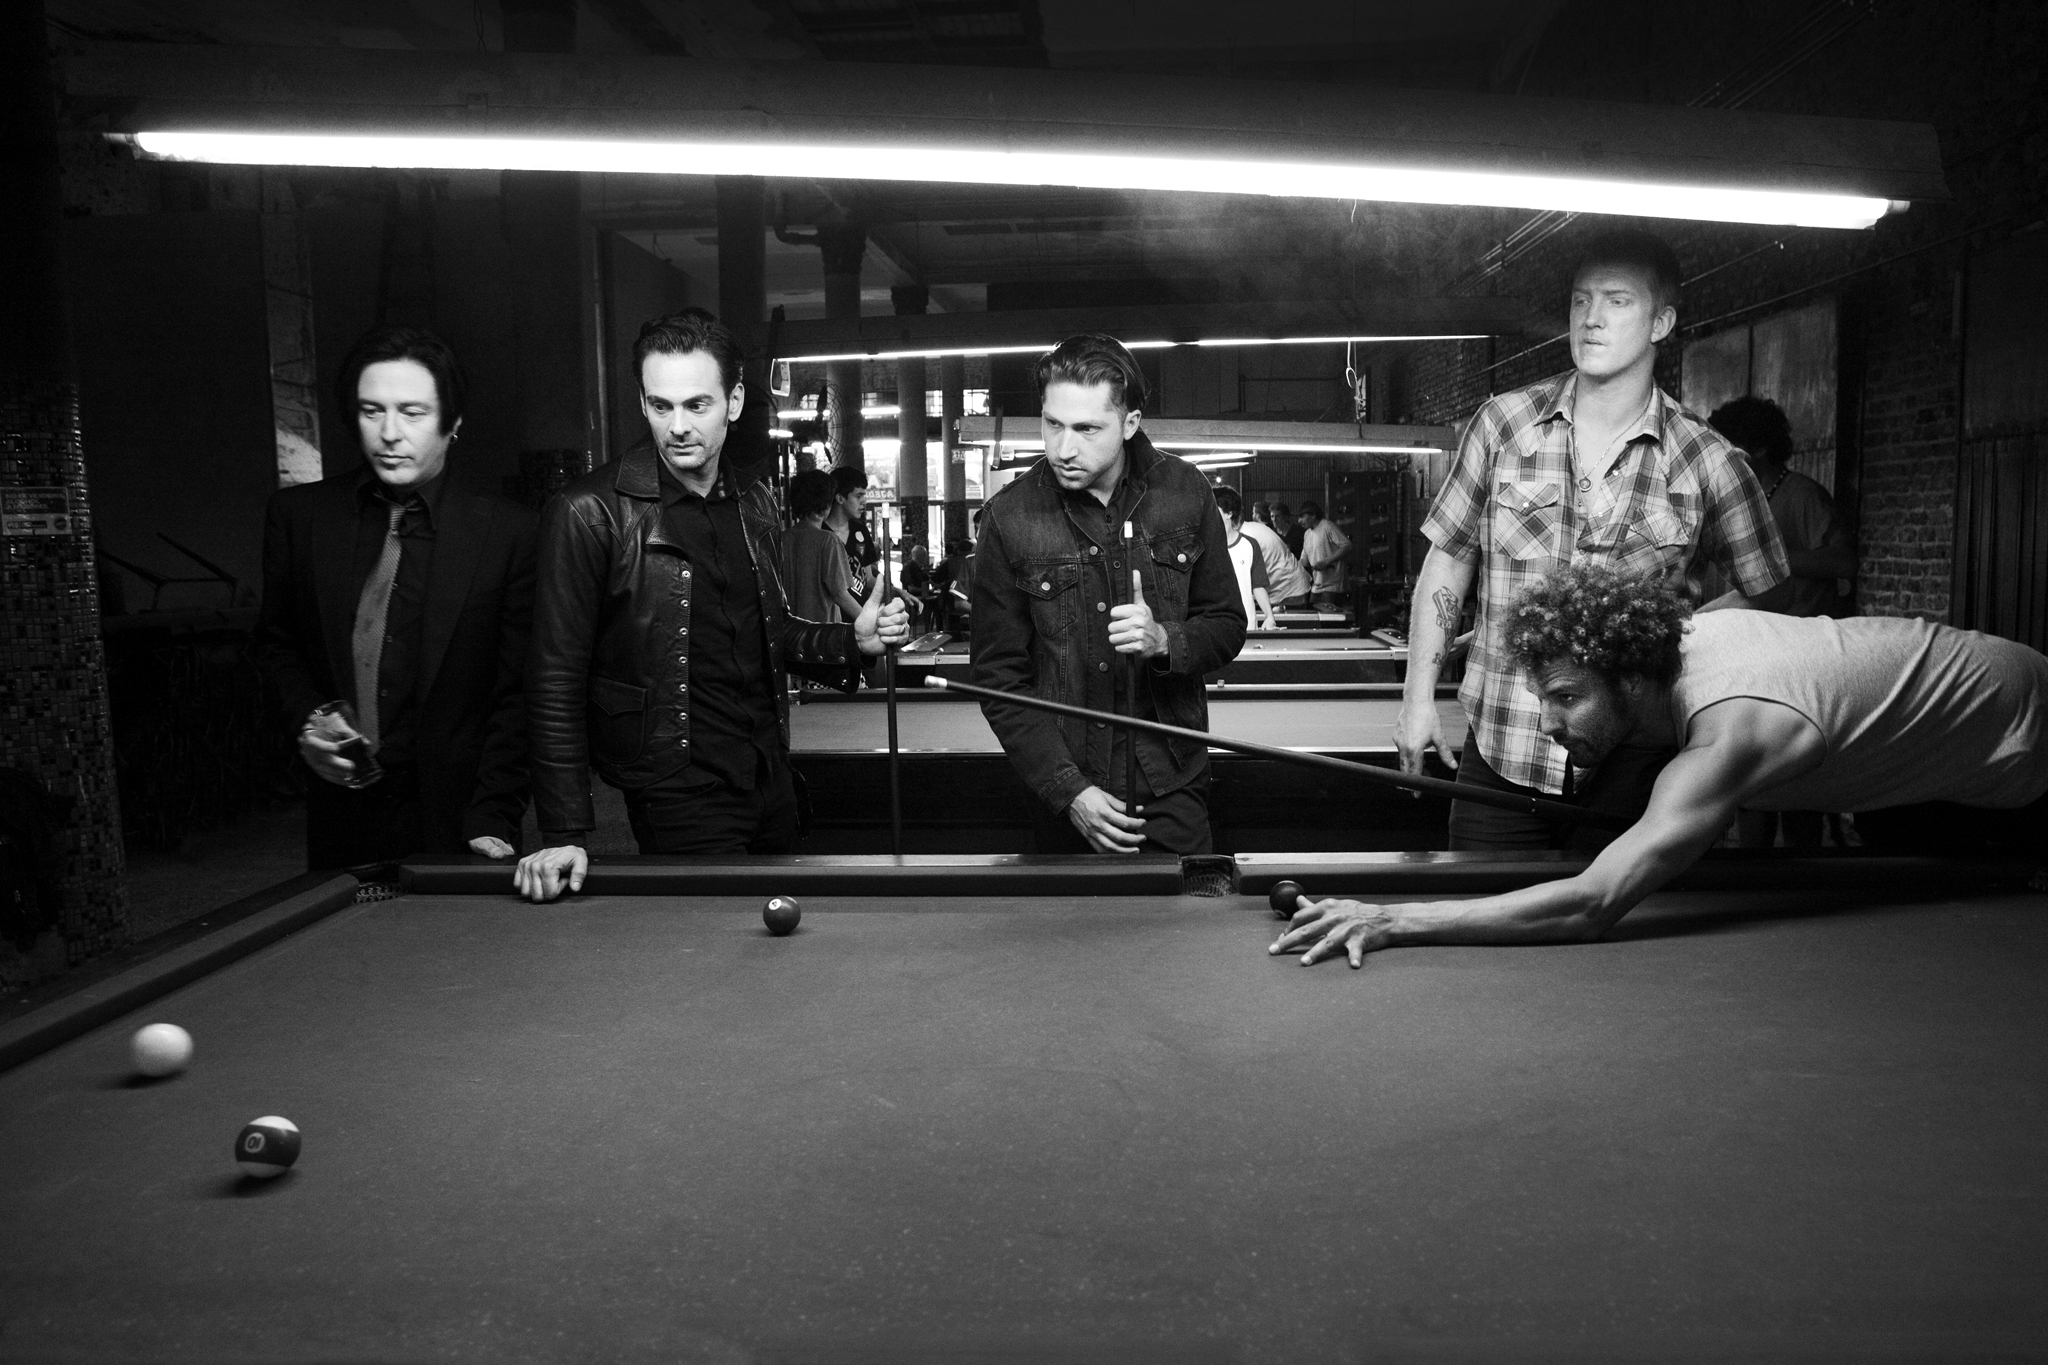 Queens of the Stone Age + Run the Jewels + Biffy Clyro